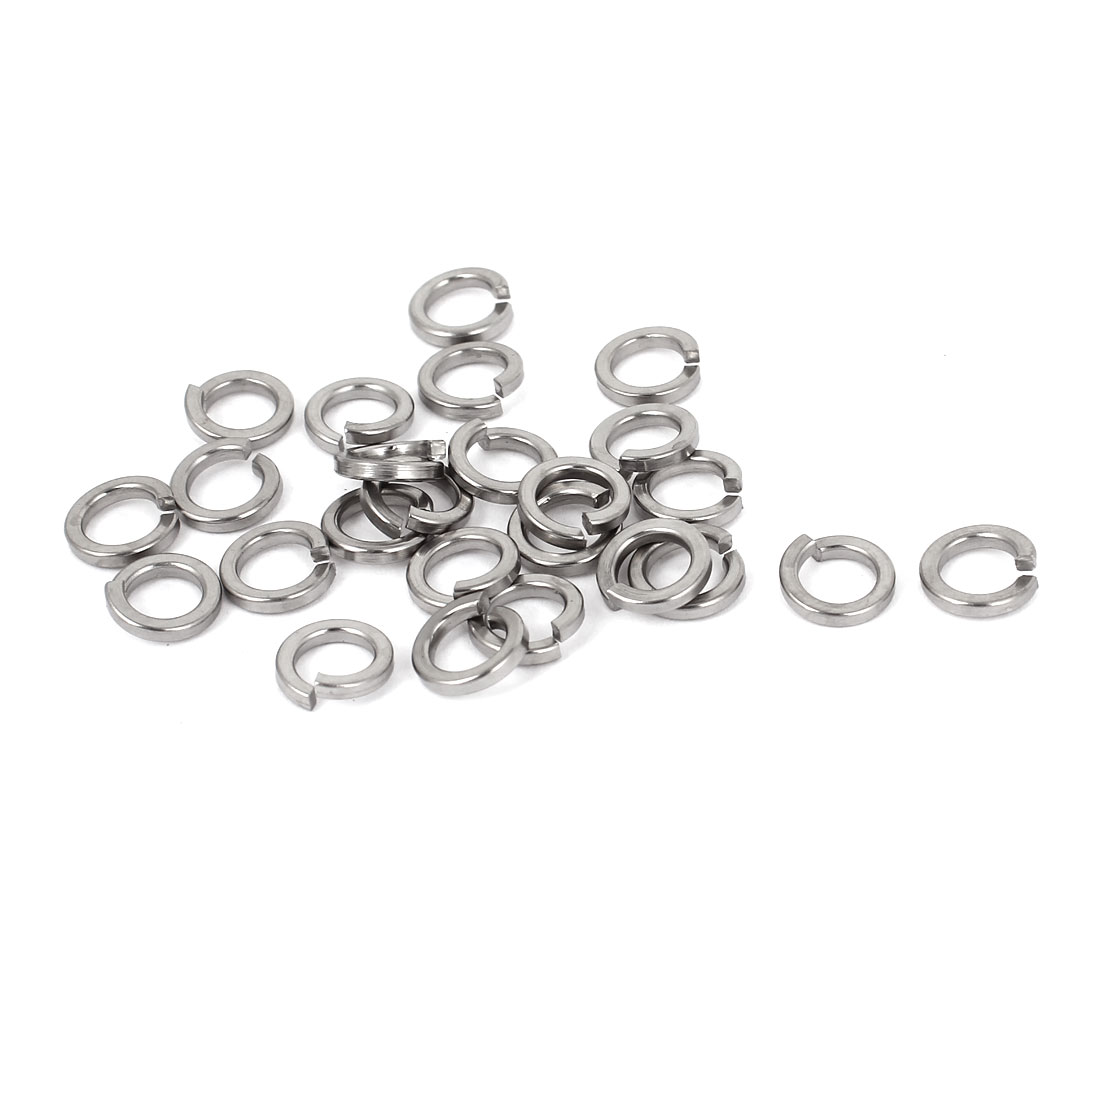 "25pcs 304 Stainless Steel Split Lock Spring Washers 1/4"" Screw Spacer Pad"